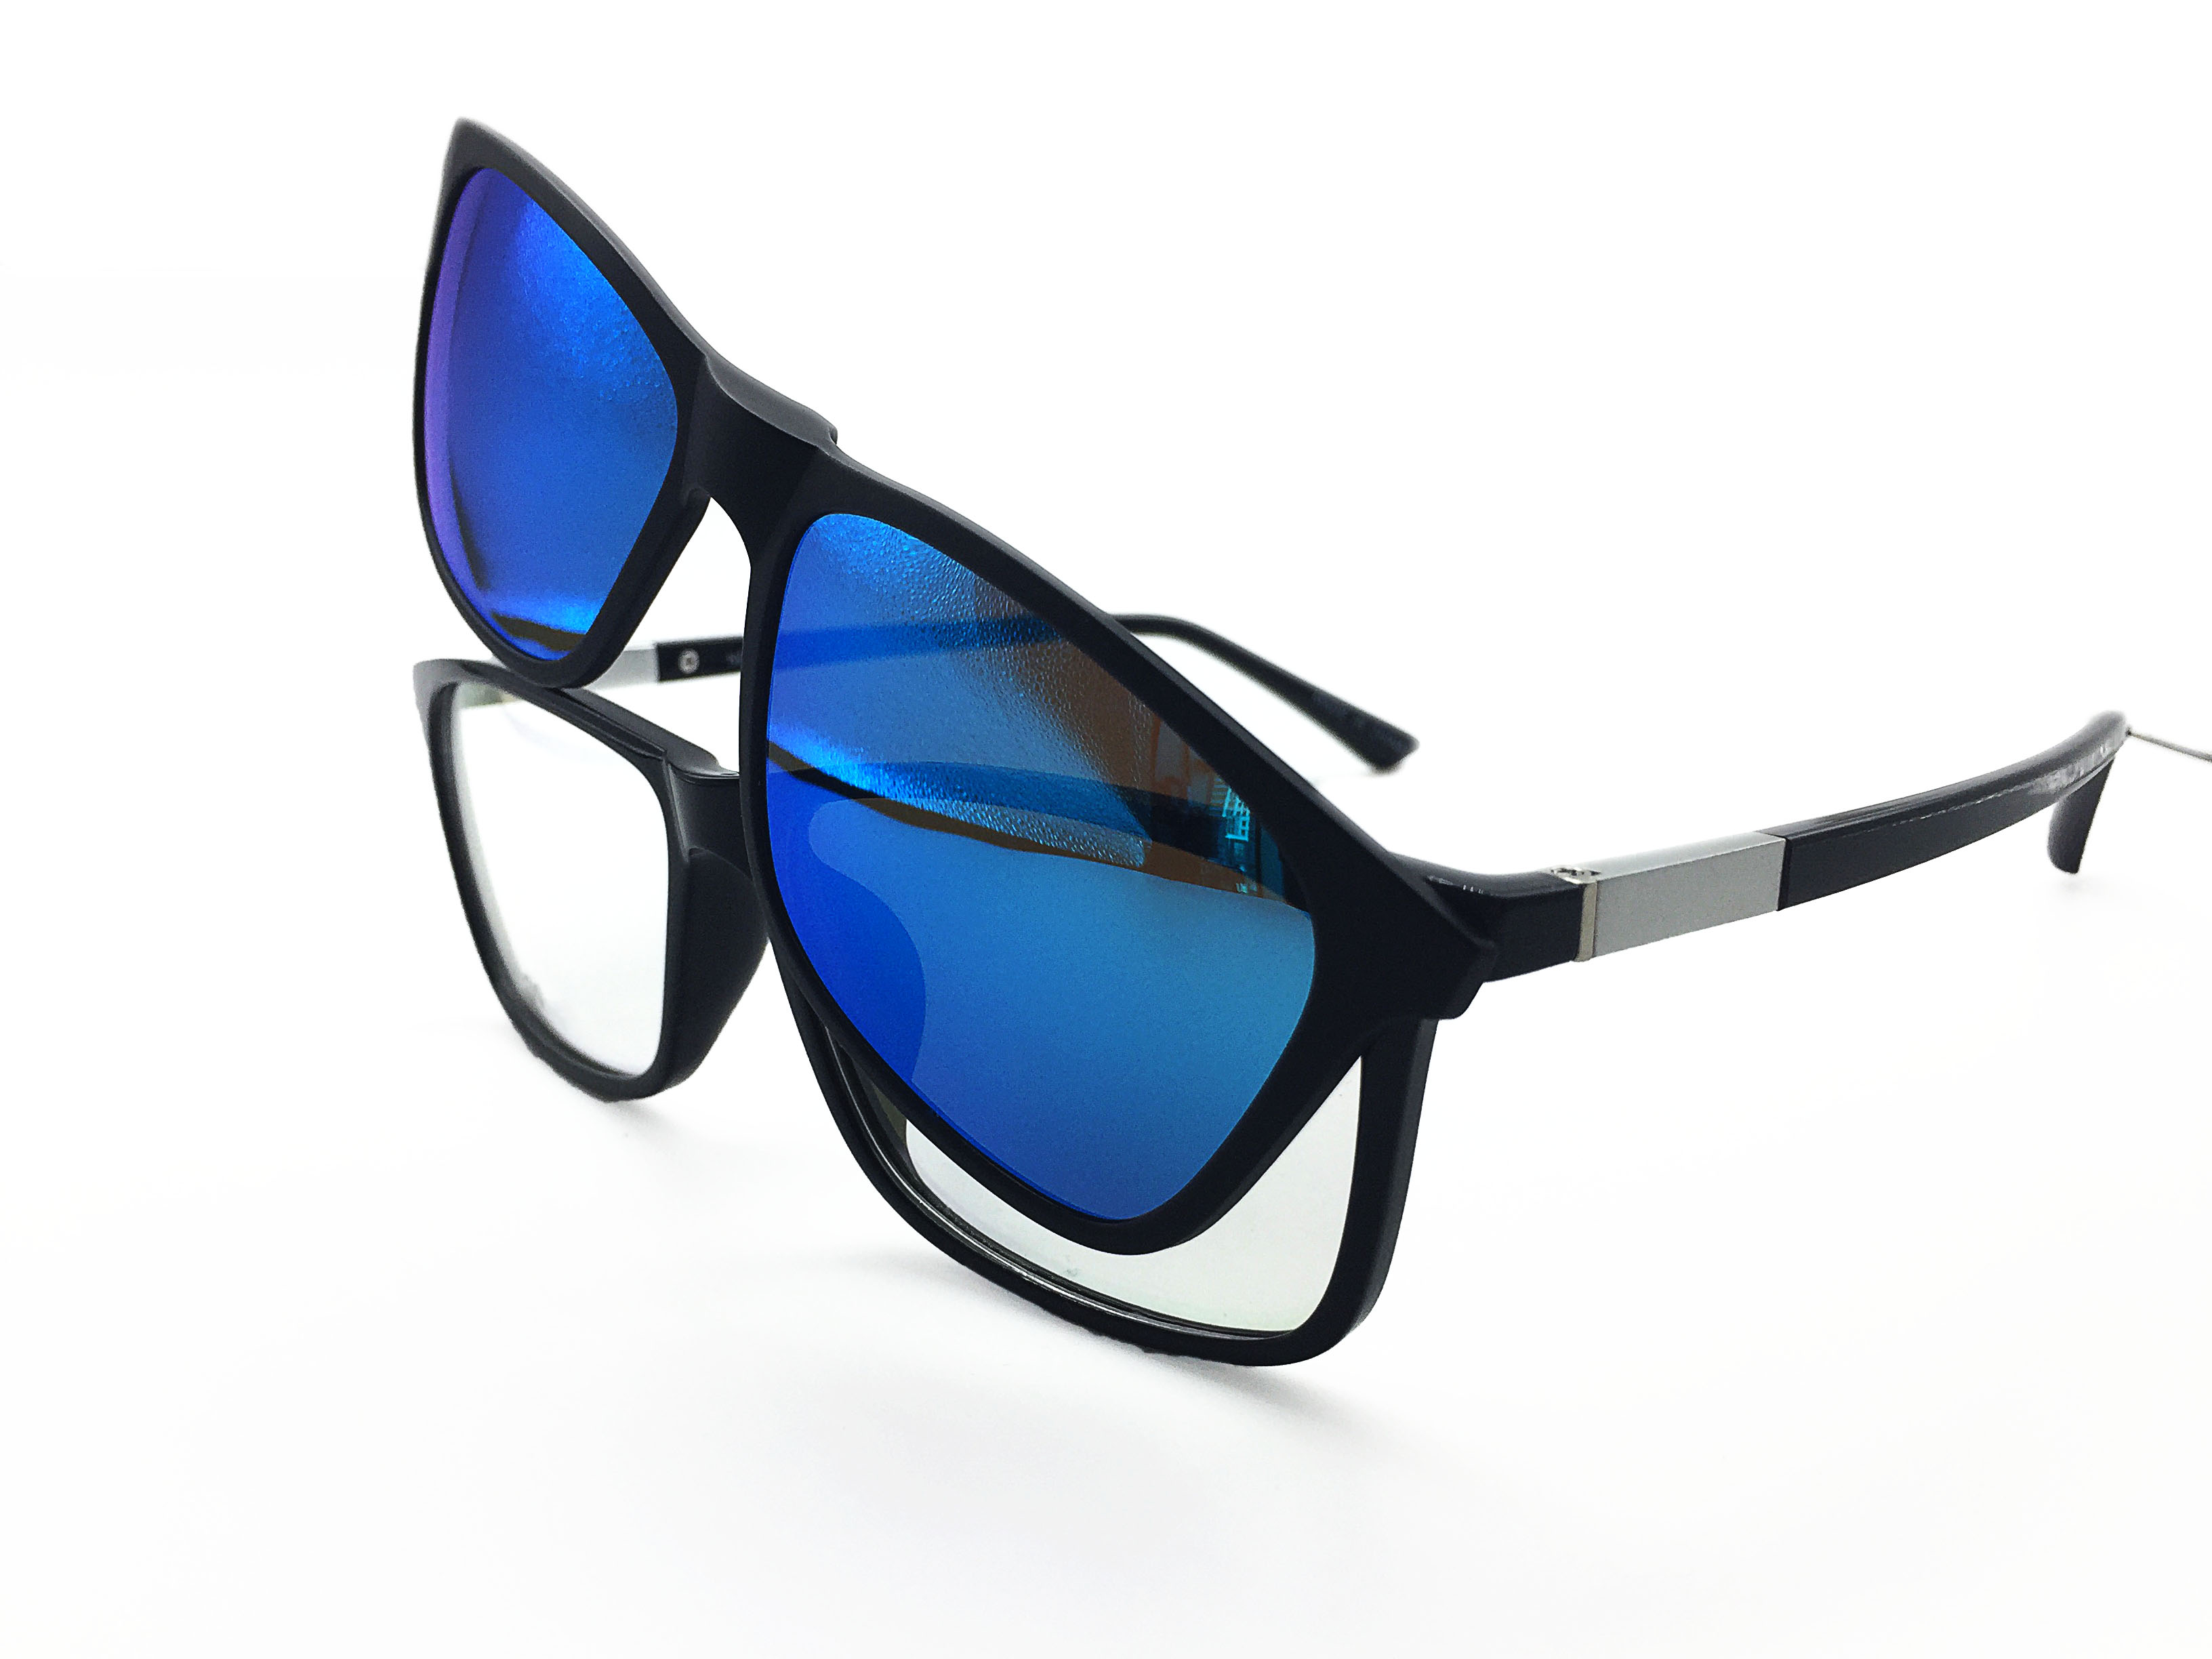 2way sunglass|international trade